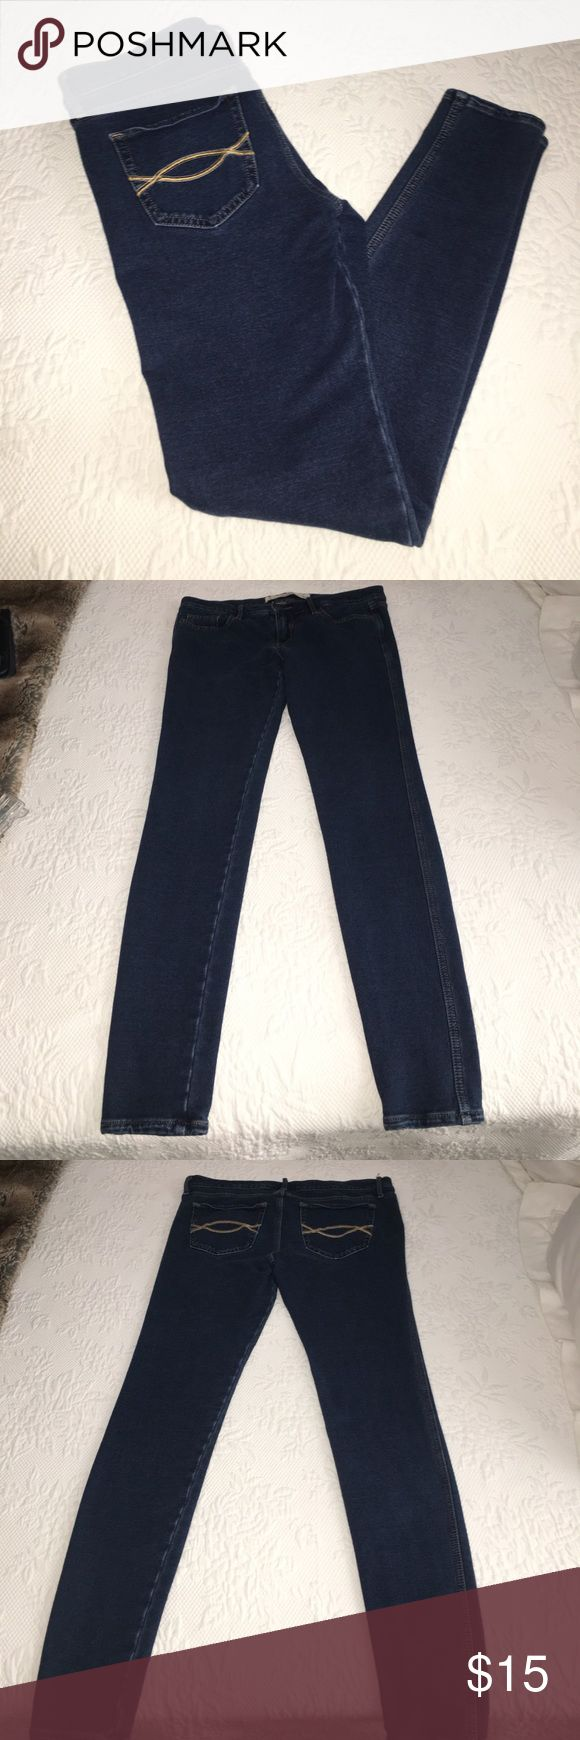 Abercrombie and Fitch Jegging Used A&F jeans/leggings! Very comfortable and soft. Have tiny hole at seam of back pocket as shown in last pic. Size 27 or 4. Could fit size 2. Abercrombie & Fitch Jeans Skinny